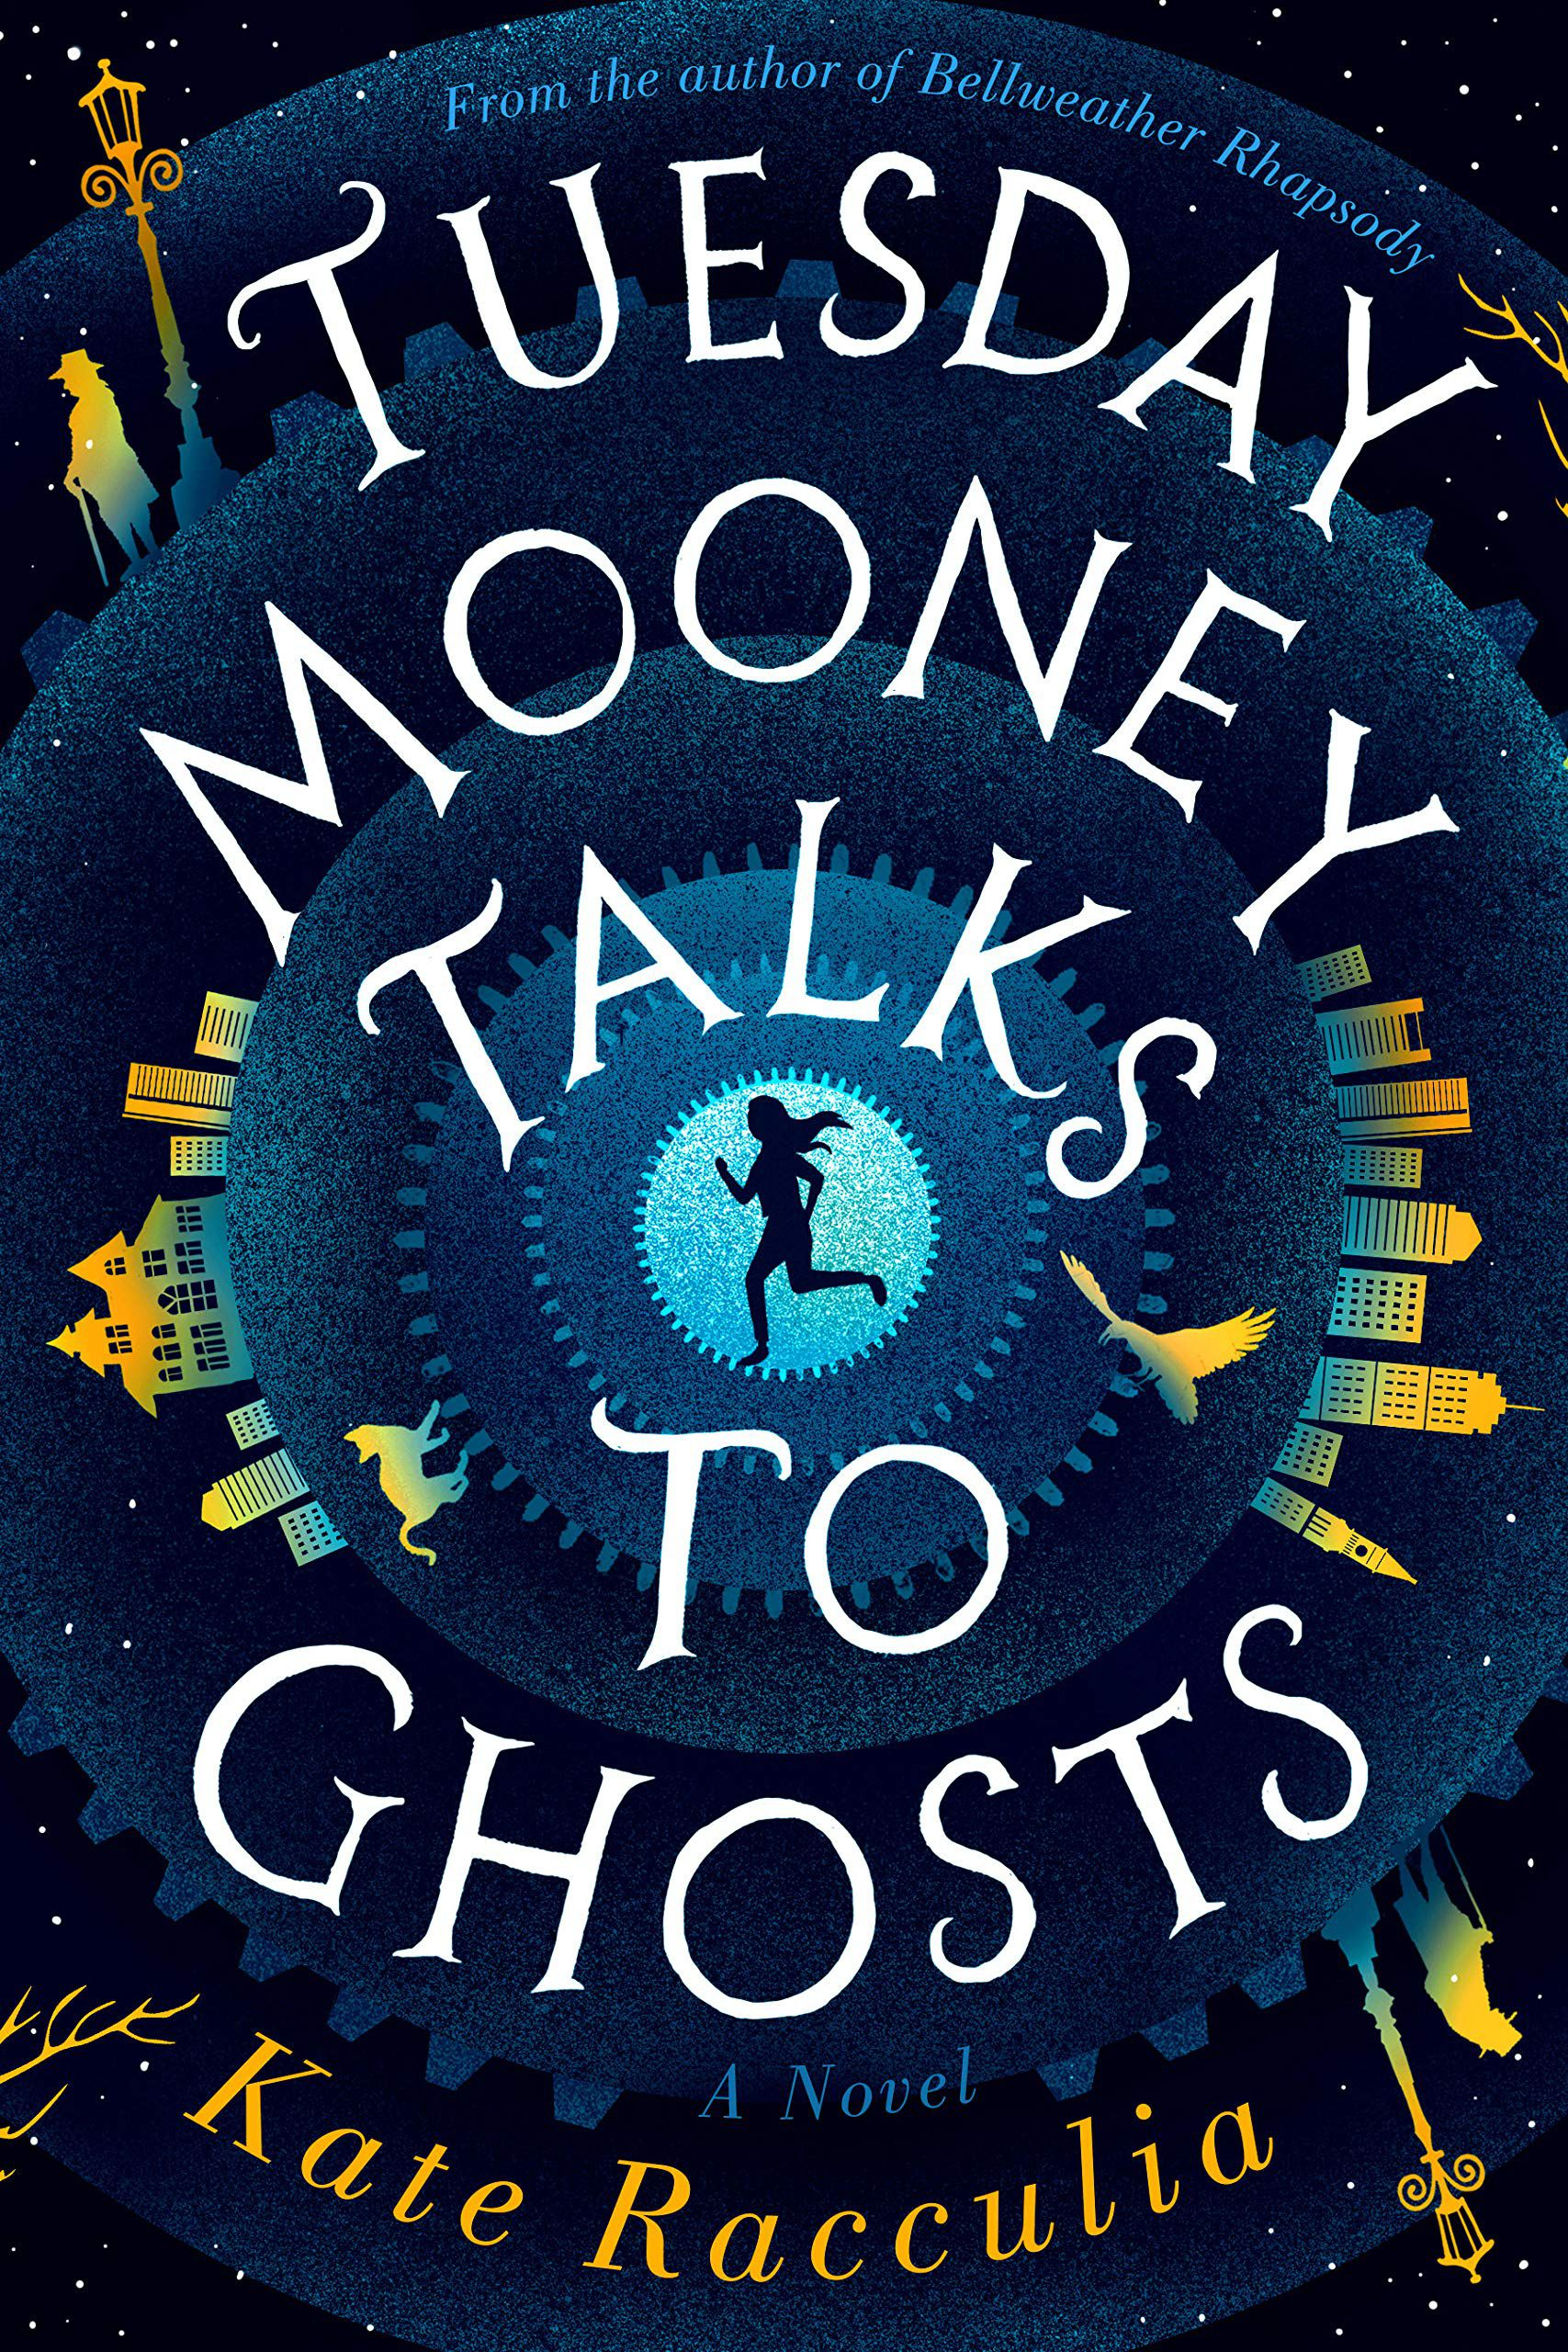 Book cover of Tuesday Mooney Talks to Ghosts